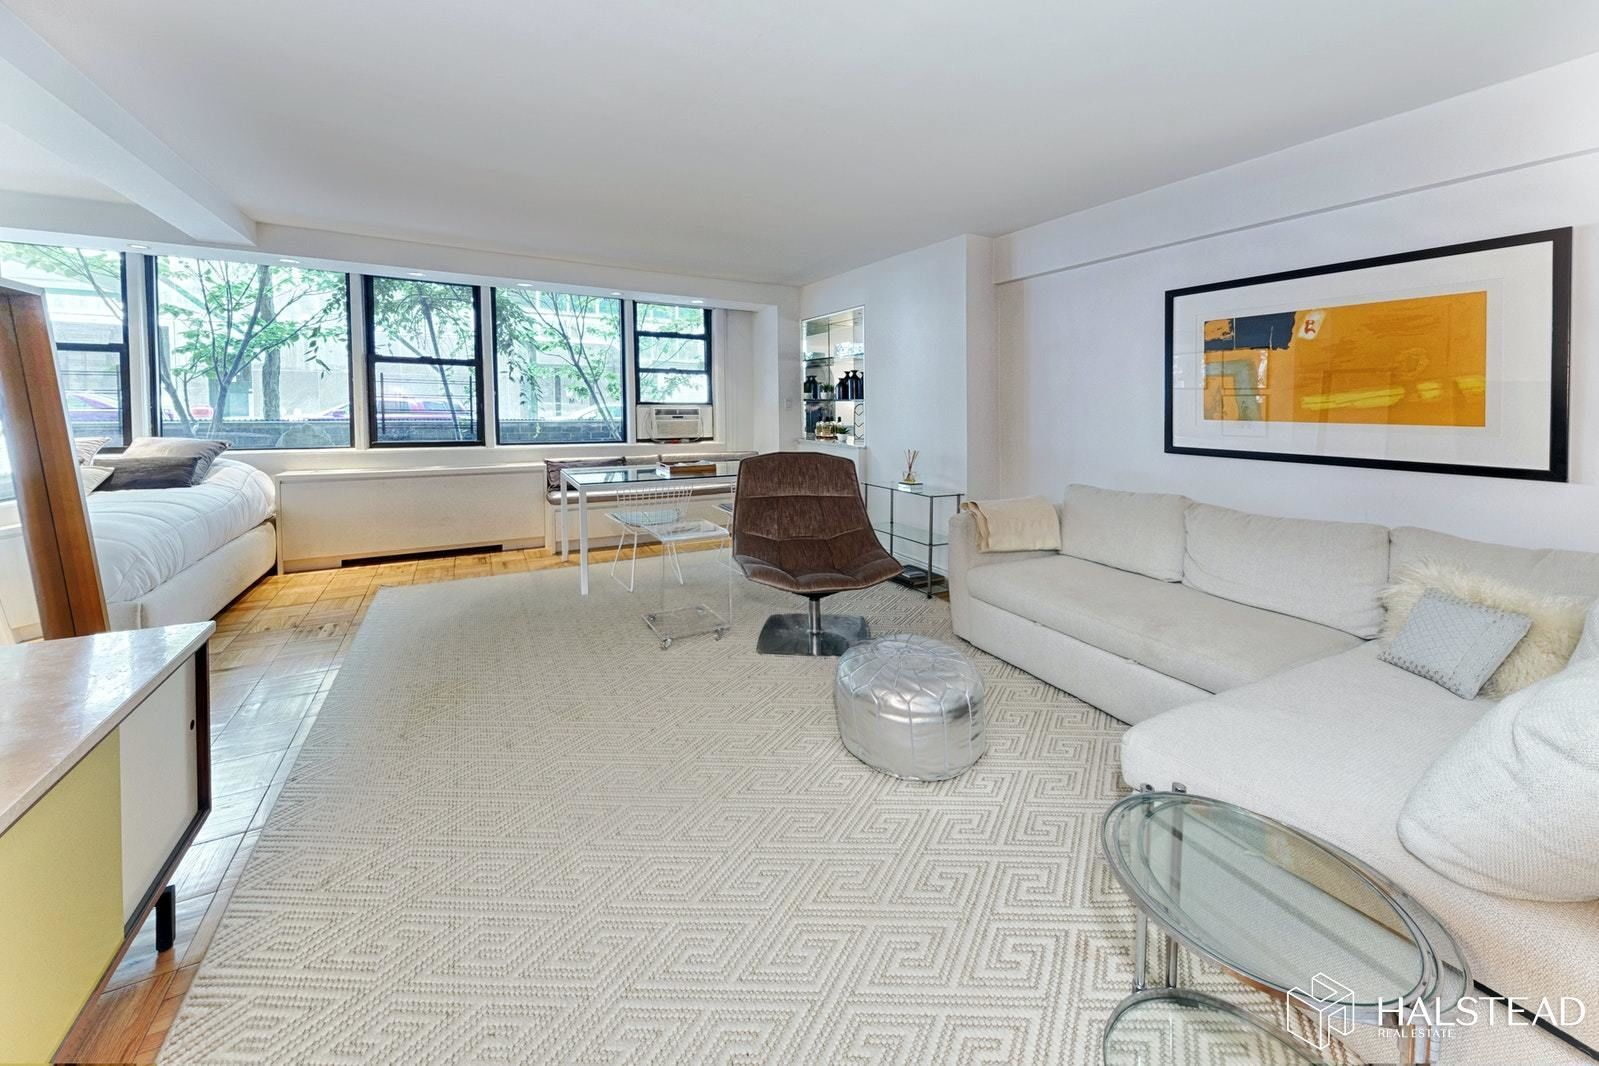 Apartment for sale at 220 East 67th Street, Apt 1F